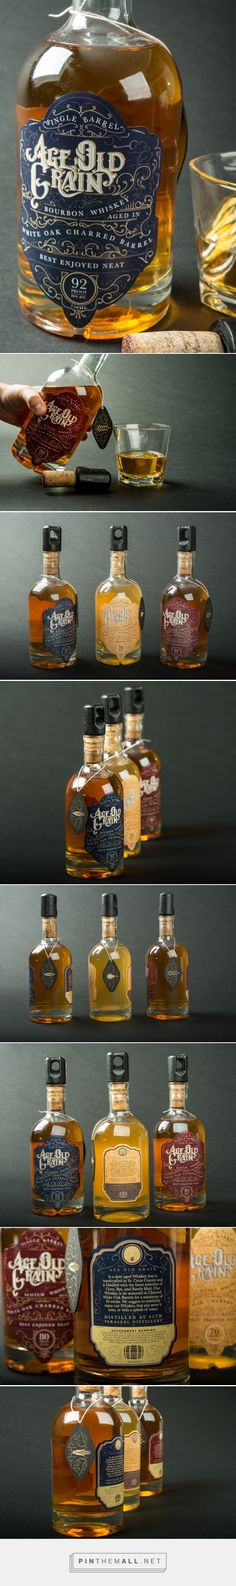 Age Old Grain (Student Project) - Packaging of the World - Creative Package Design Gallery - http://www.packagingoftheworld.com/2016/10/age-old-grain-student-project.html